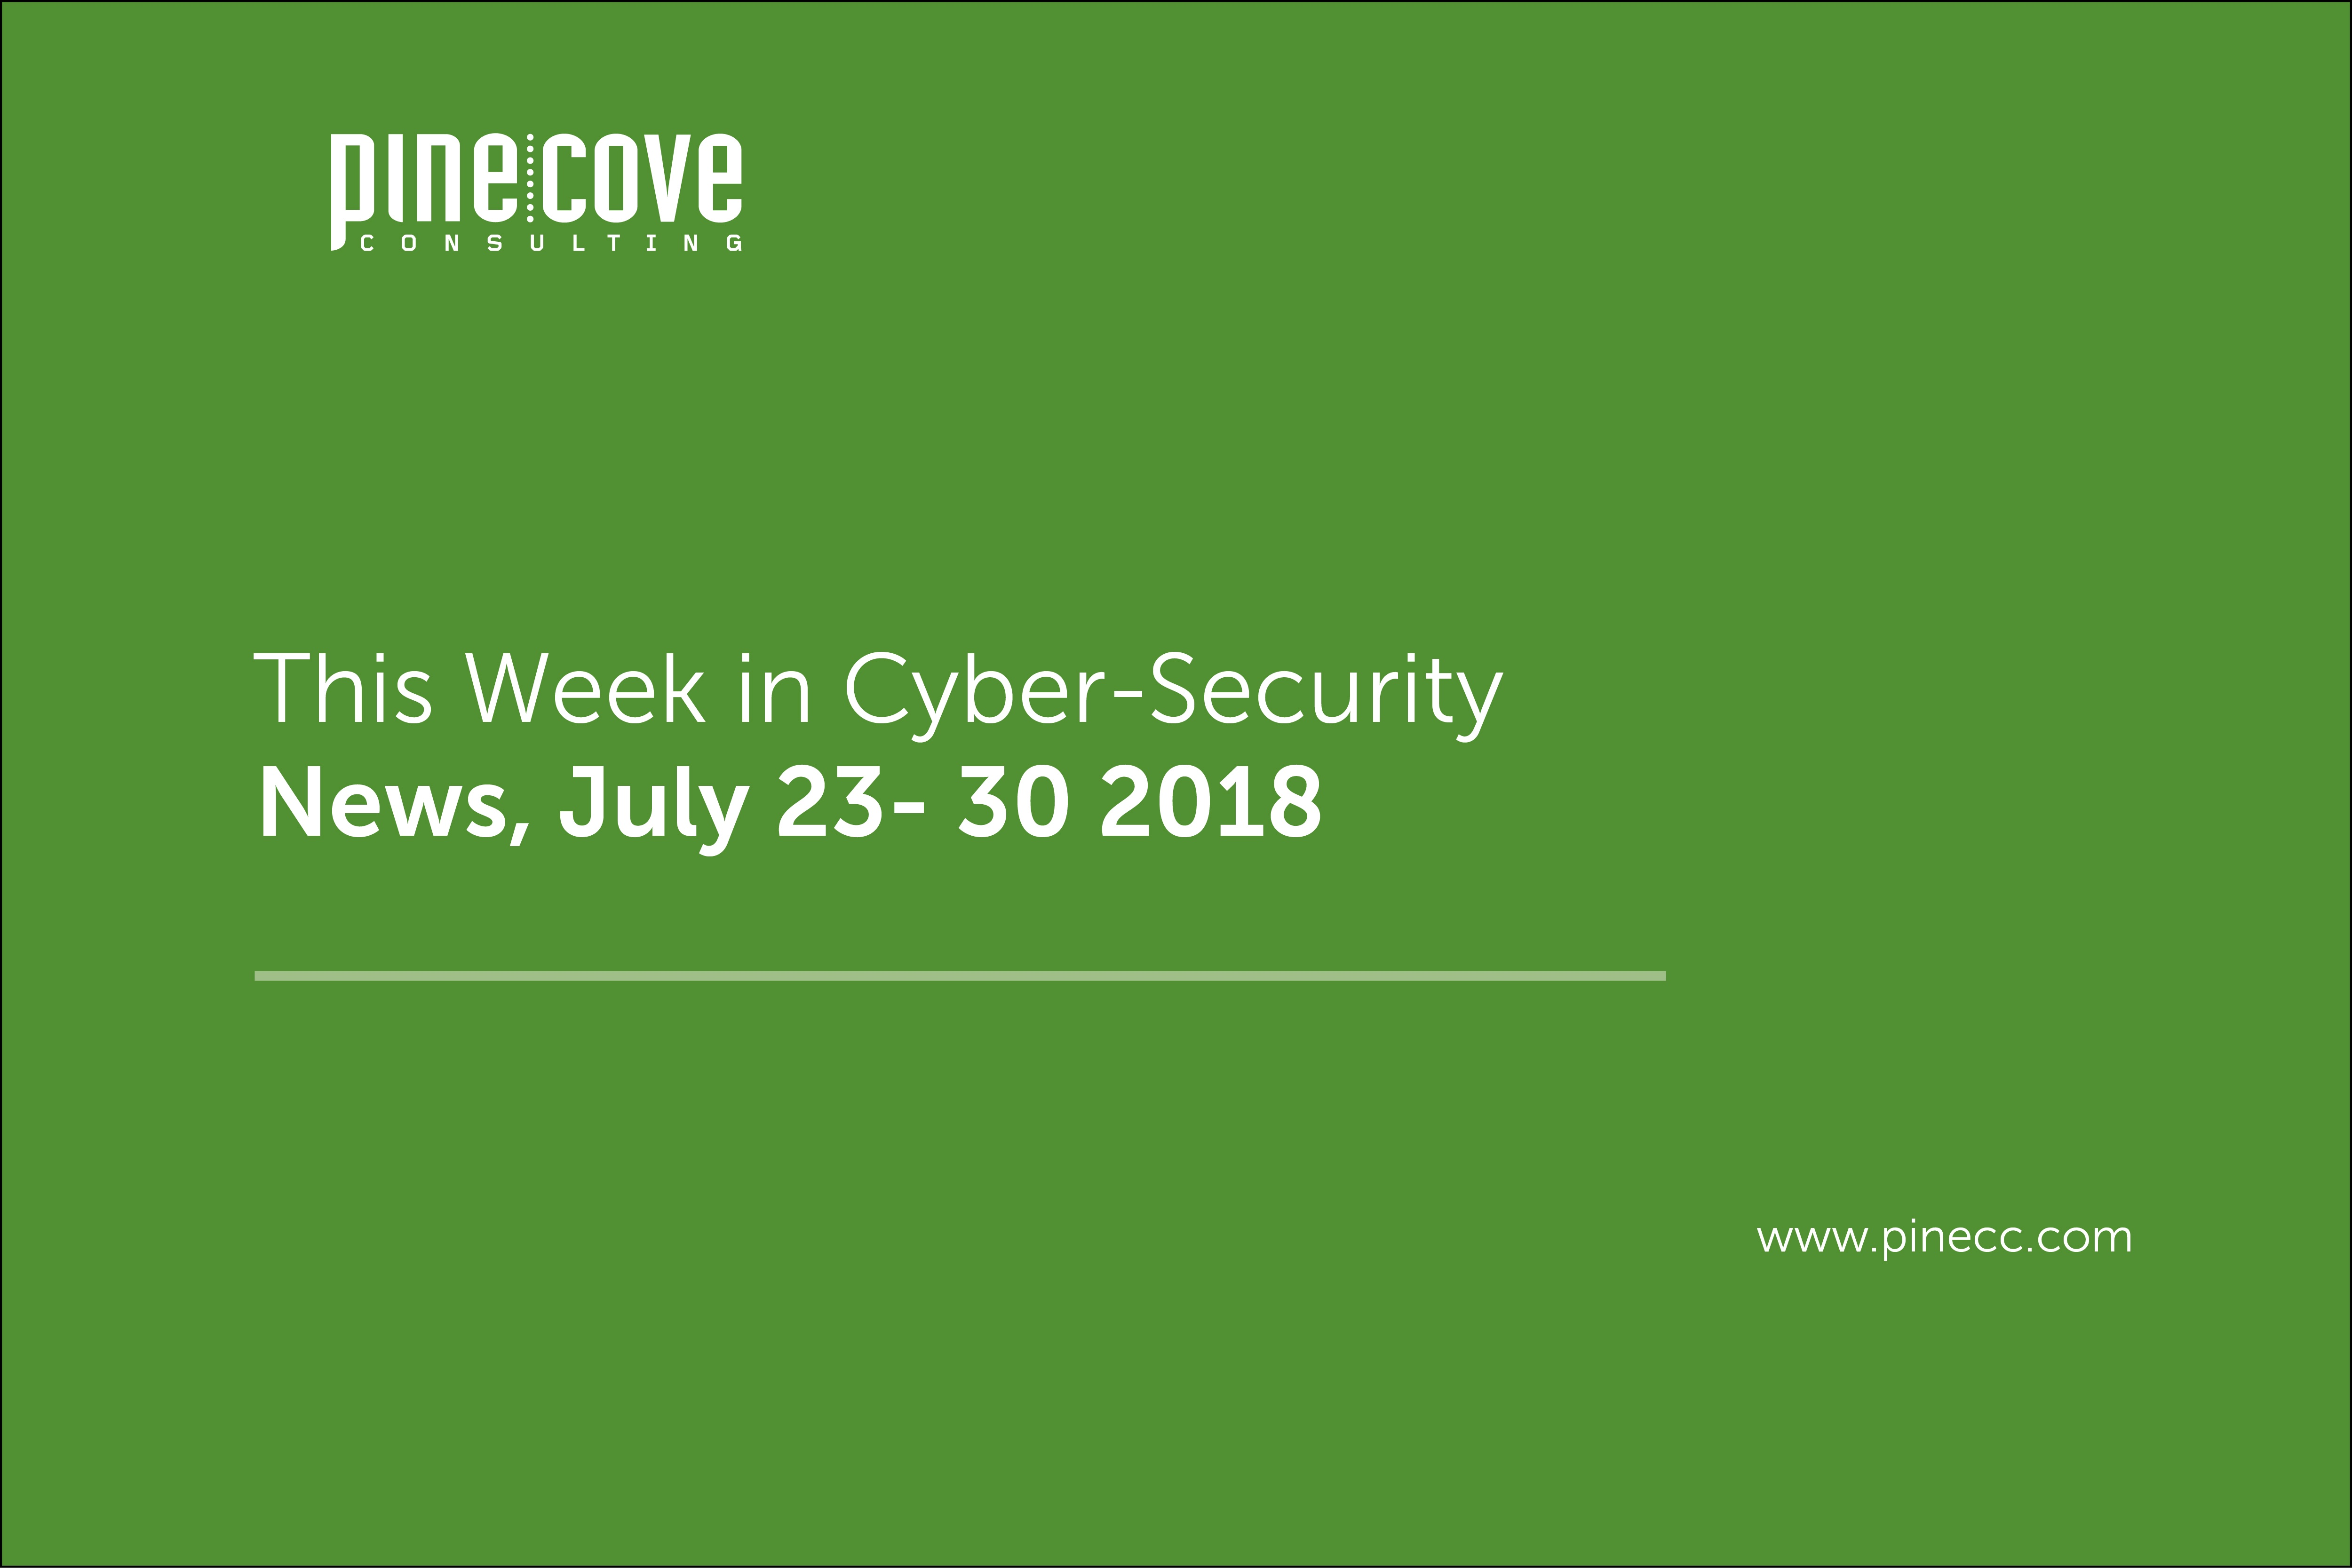 Cyber-Security News